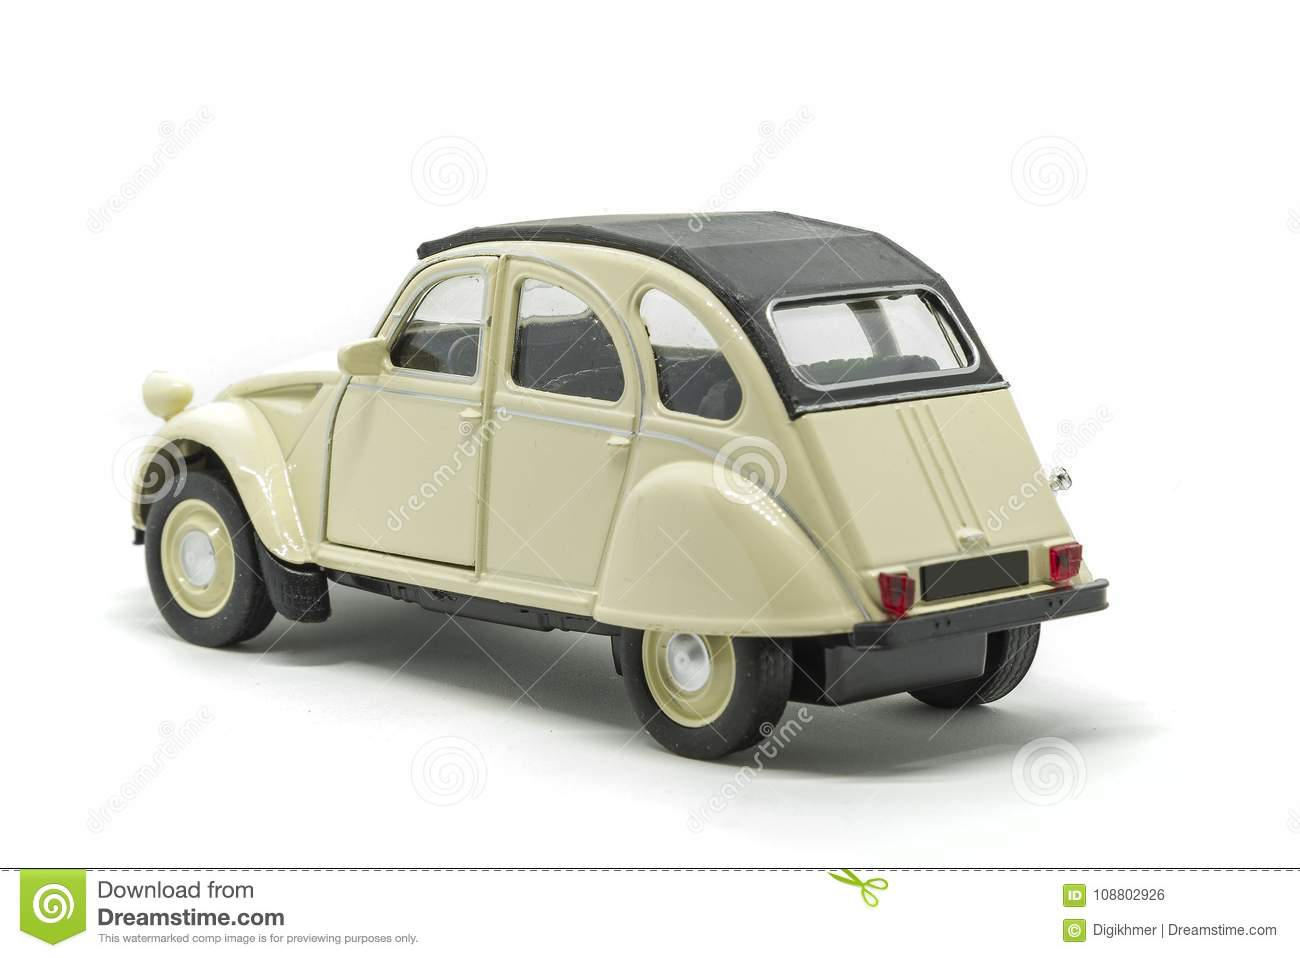 une voiture de citroen 2cv de dos d u0026 39  u00e9pop u00e9e photo stock